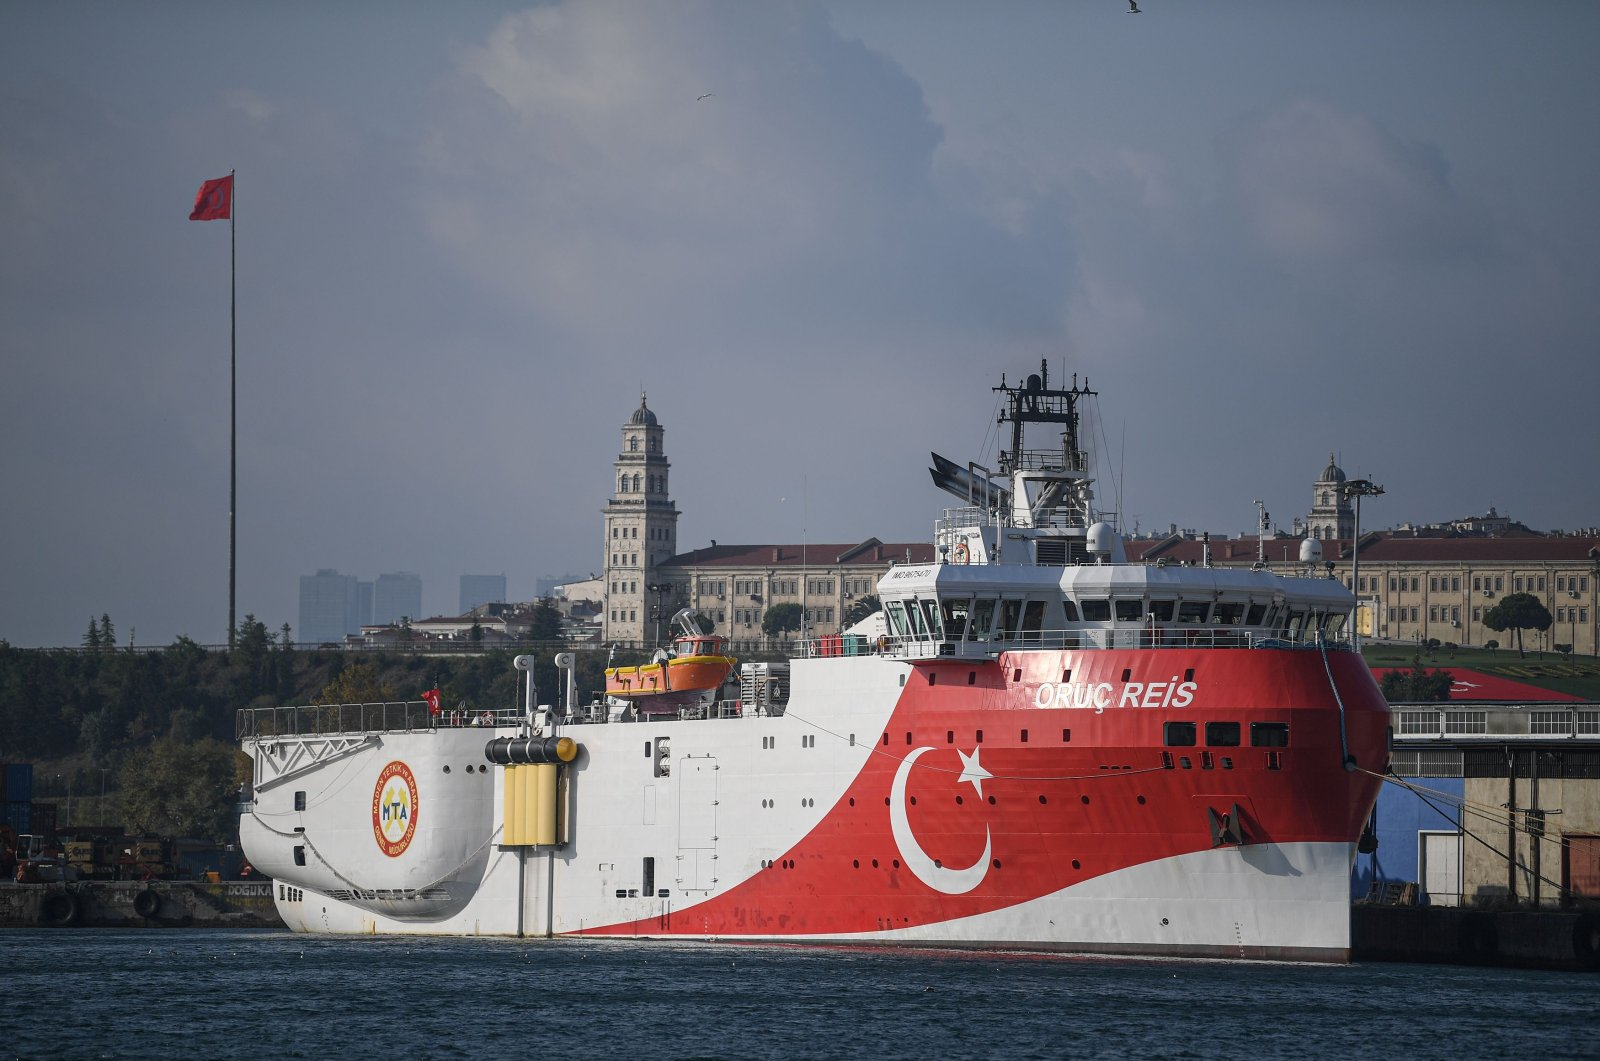 A view of the Turkish General Directorate of Mineral Research and Exploration's (MTA) Oruç Reis seismic research vessel docked at Haydarpaşa port, Istanbul on Aug. 23, 2019. (AFP Photo)